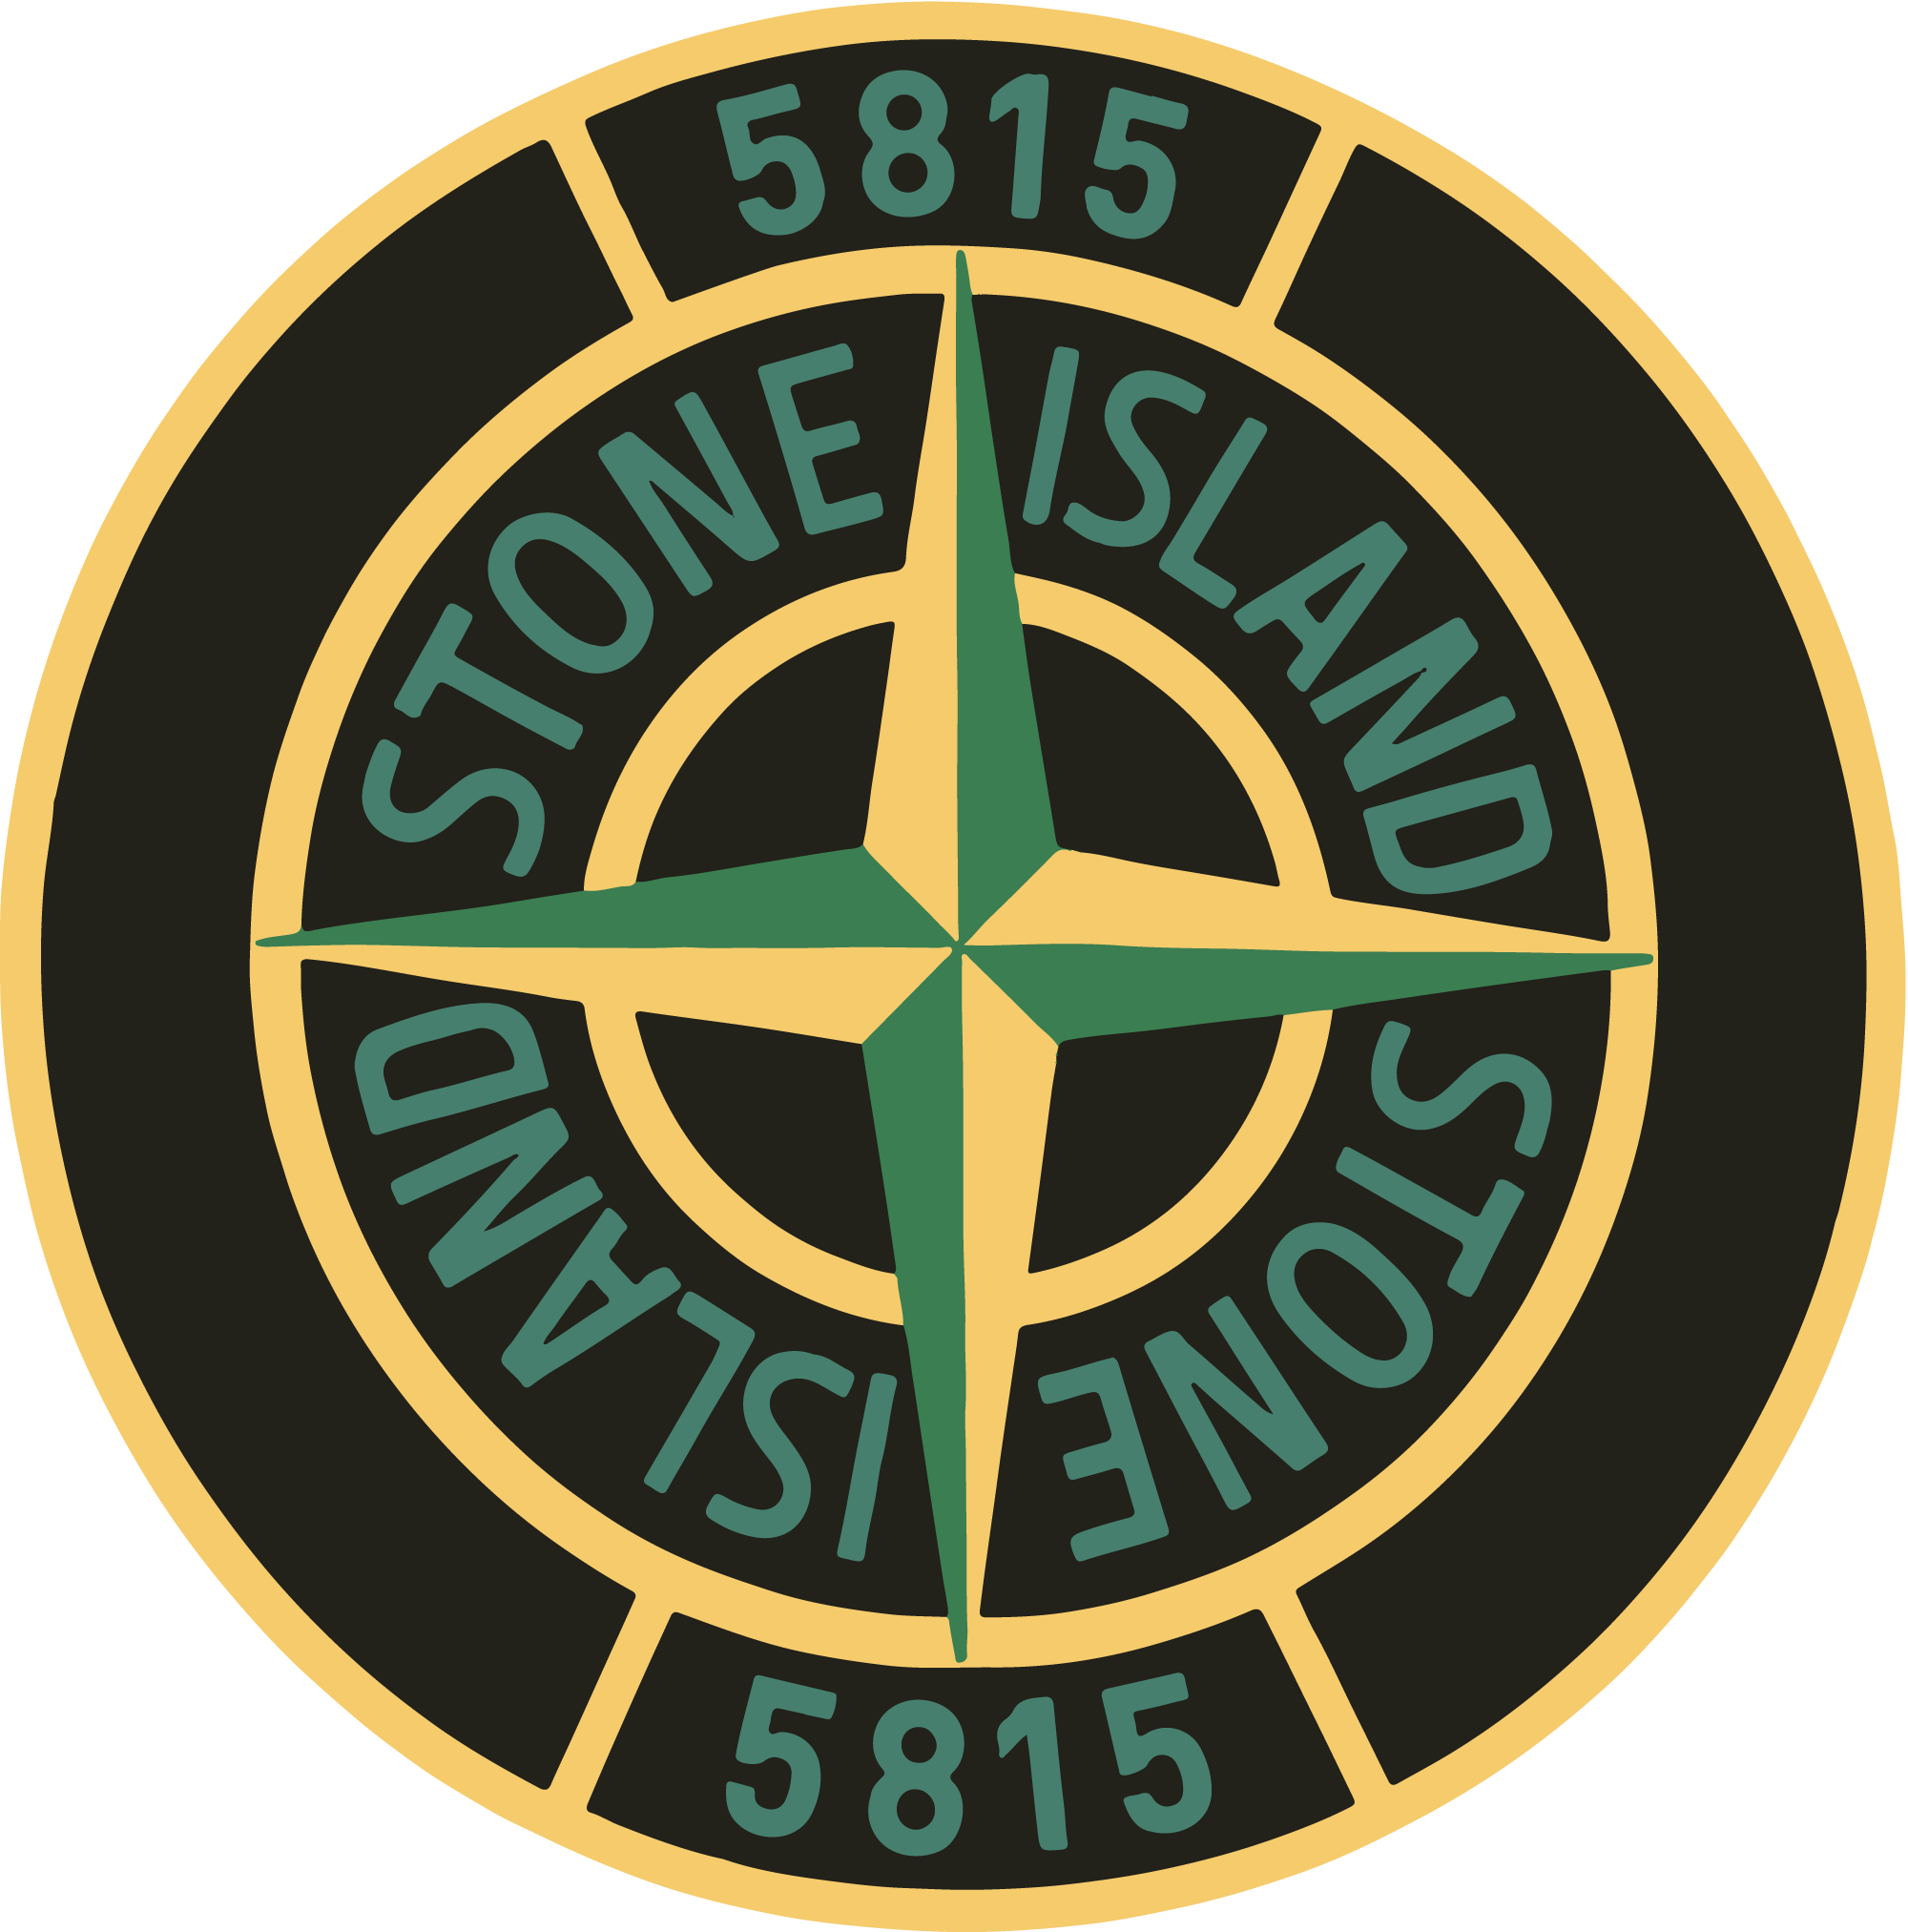 Stone Island 2359037 Hd Wallpaper Backgrounds Download